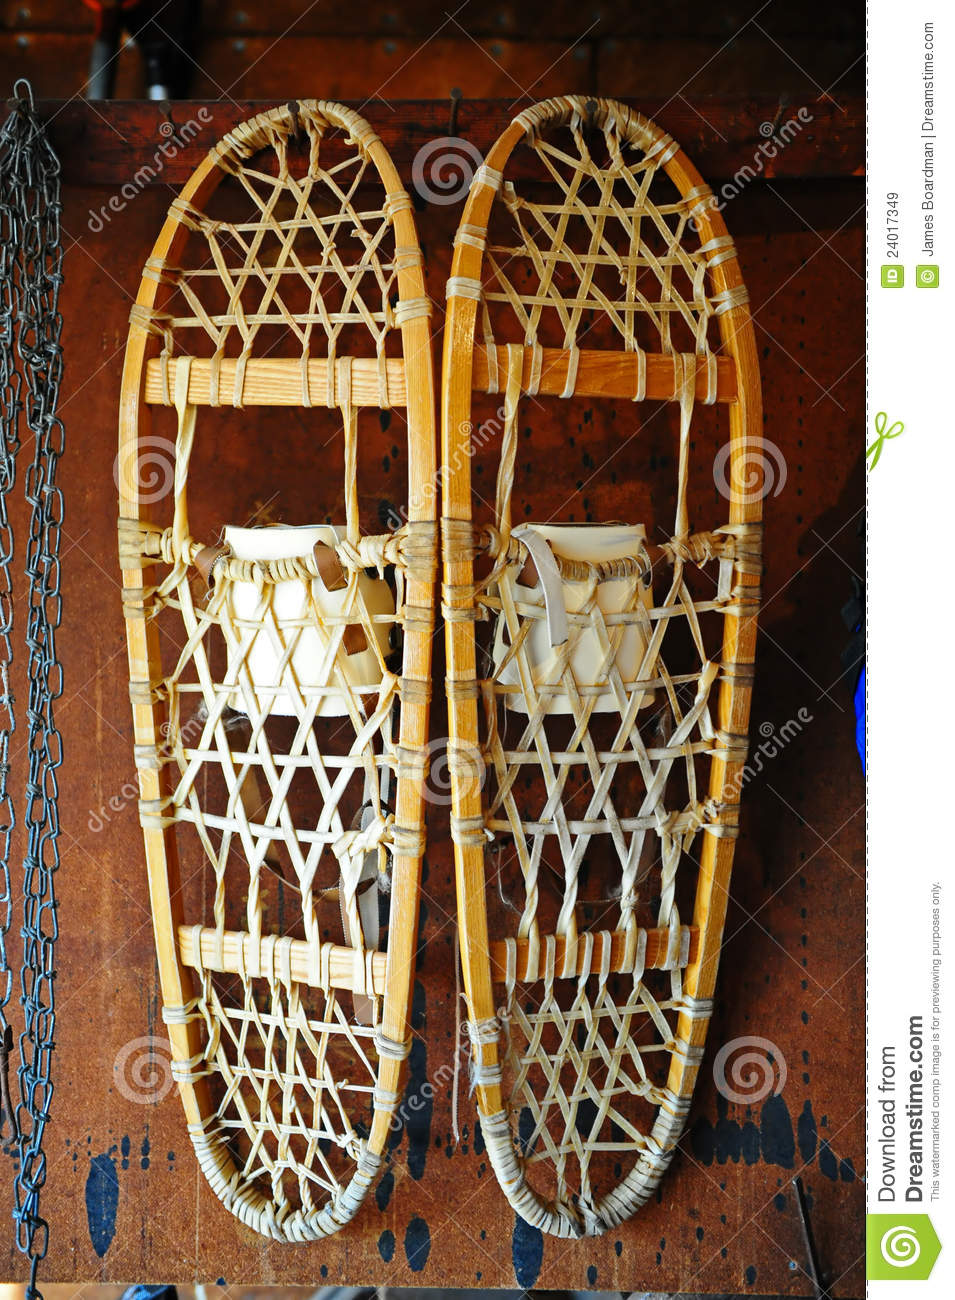 snow shoe online dating Antique snowshoes and vintage american snowshoes antique and vintage snowshoes whether you are looking for decorative, usable, or museum quality snowshoes,.